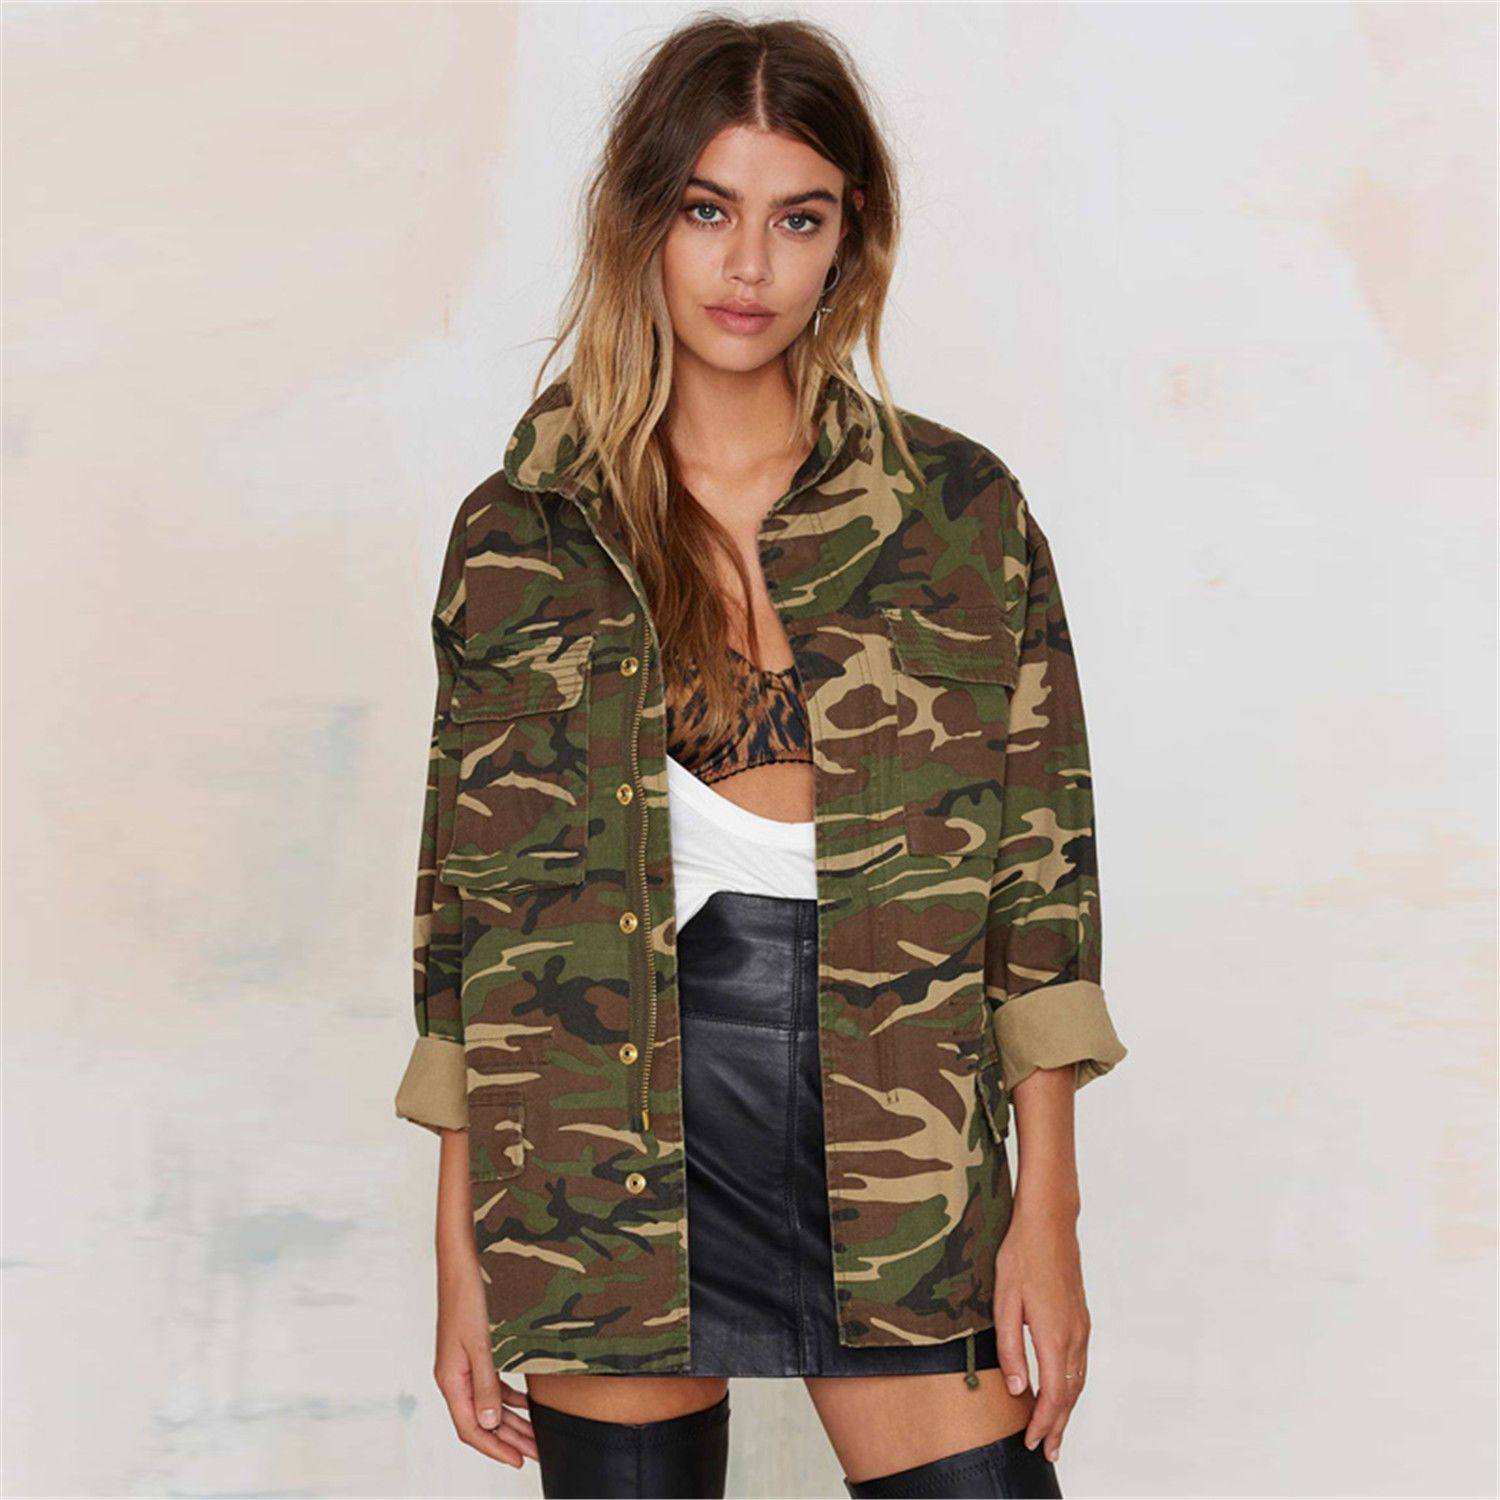 Longline Military Utility Shacket Jacket Top In Camo Camouflage Print Army  Green